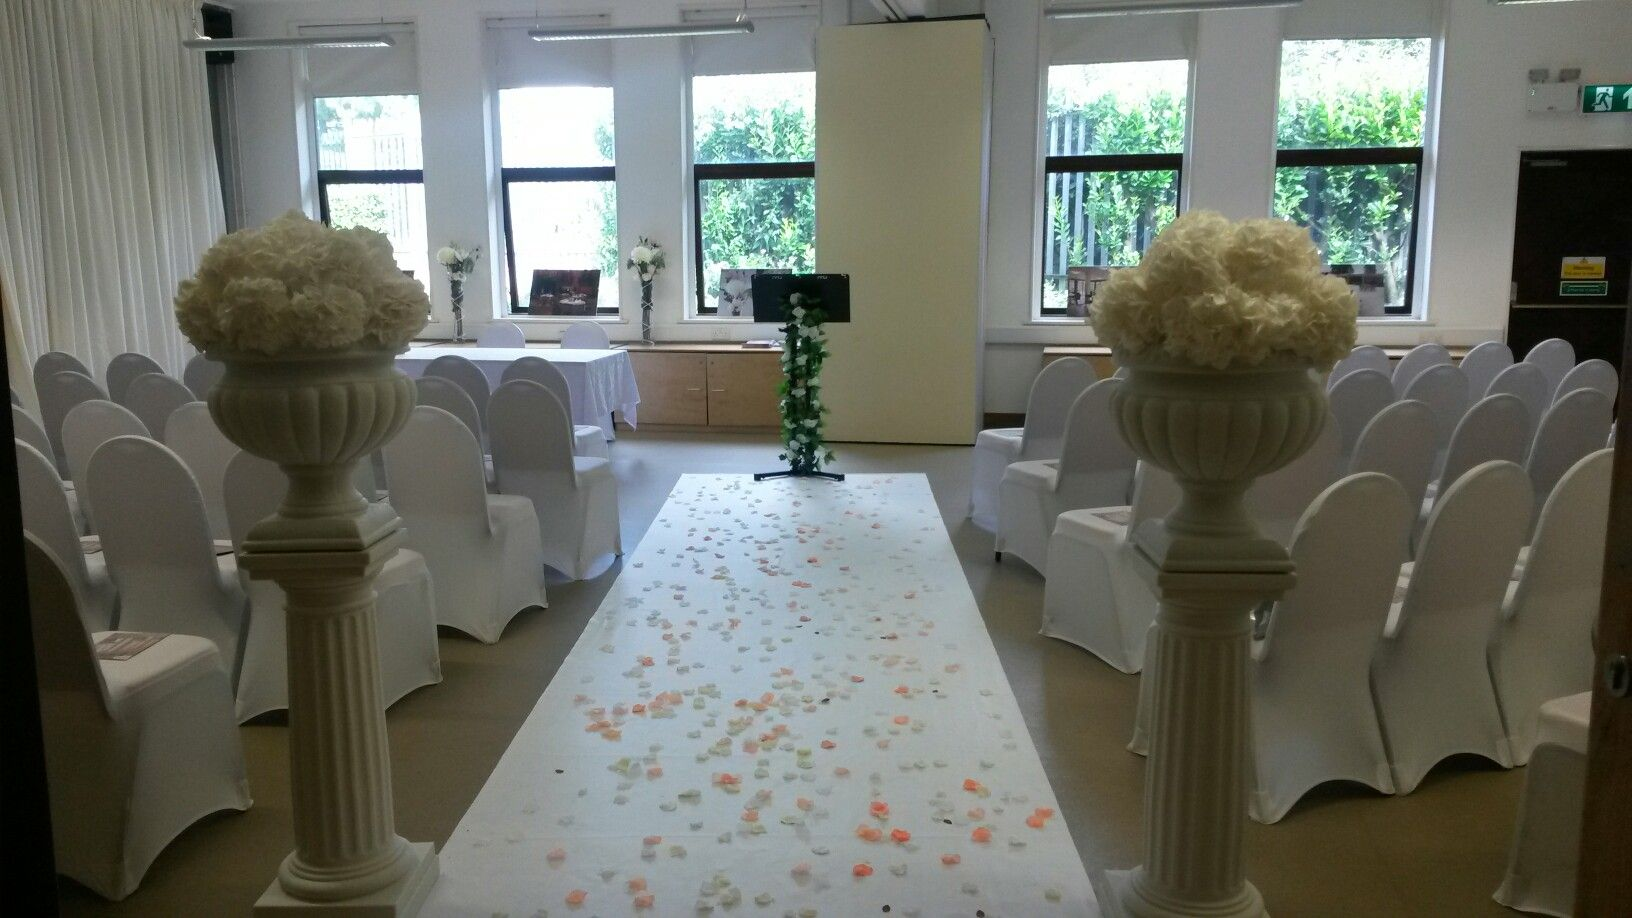 Our first ceremony room aisle runner wedding planning